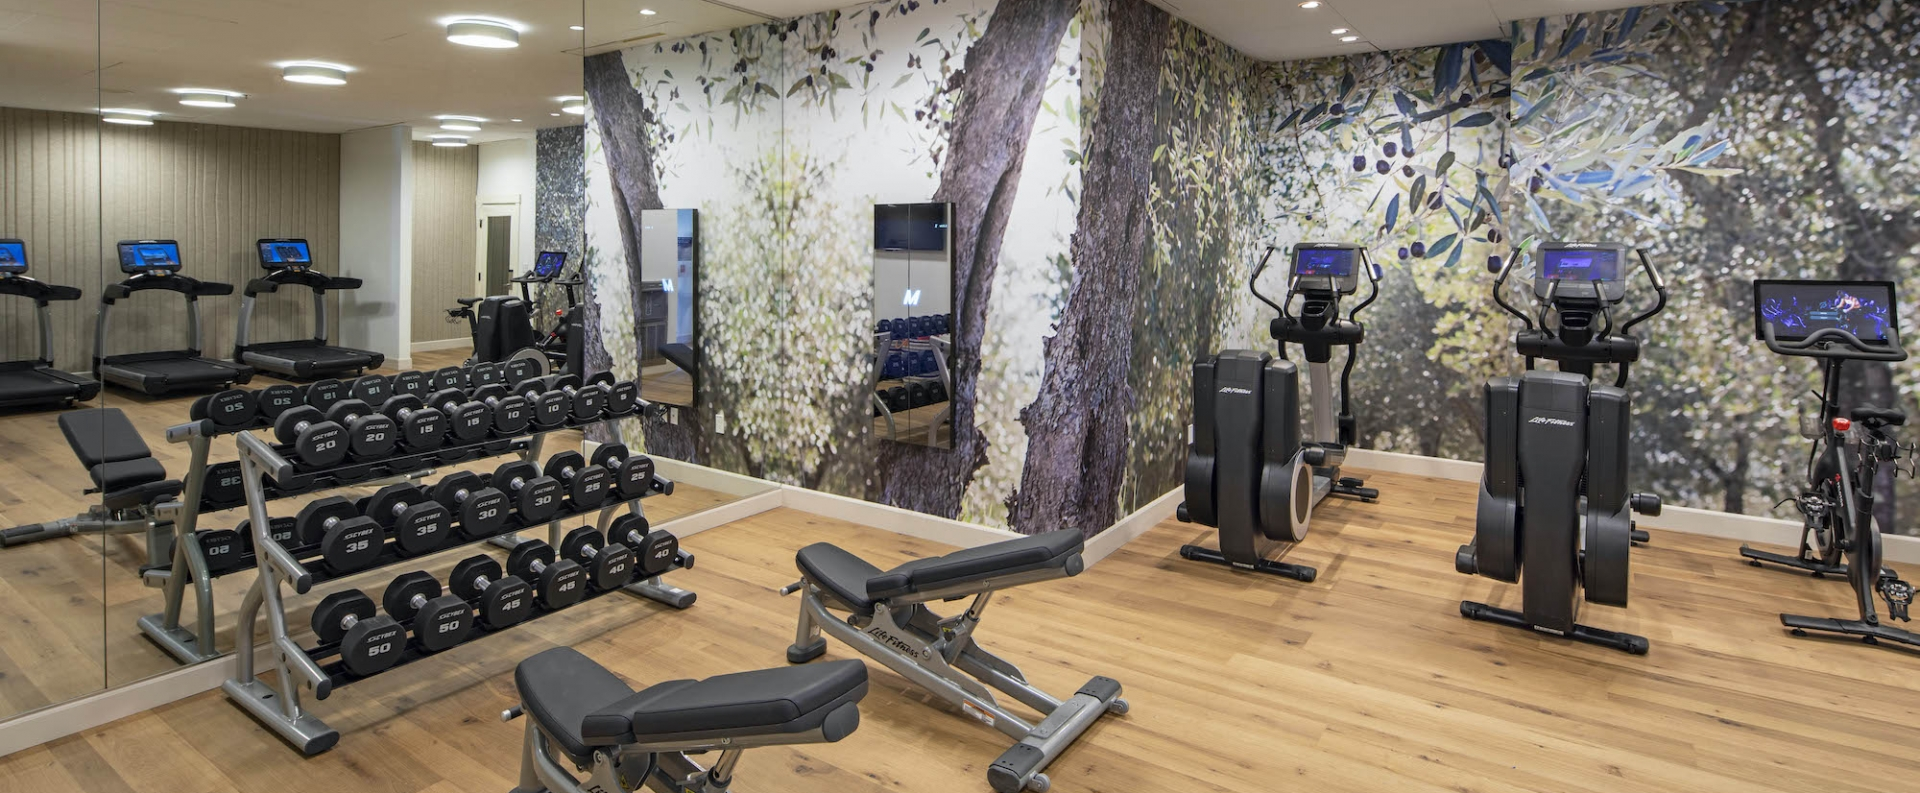 A hotel fitness center in Sonoma with a rack of free weights and rows of treadmills.